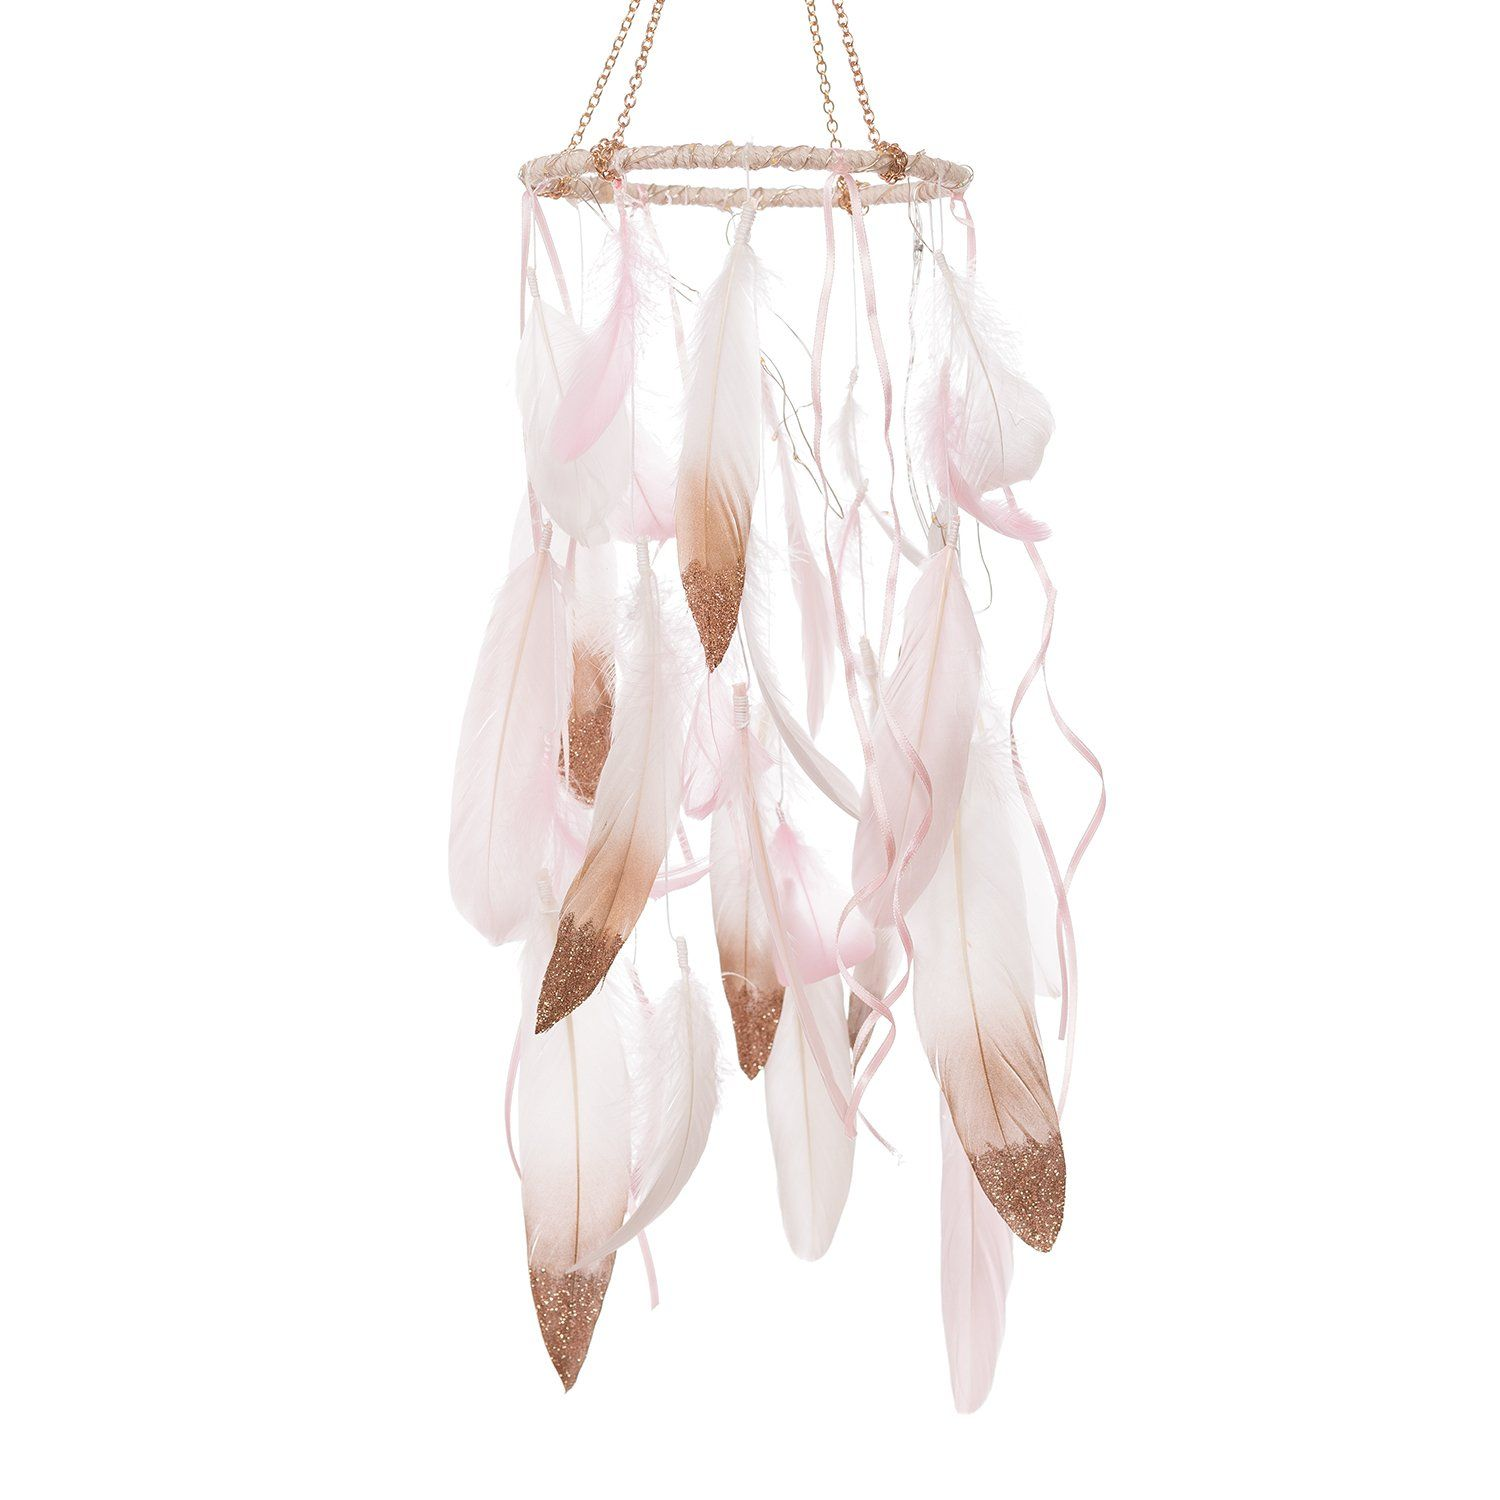 Lings Moment Feather Dream Catcher Mobile Led Fairy Lights Battery Ed Hanging Ornaments With Gold Dipped